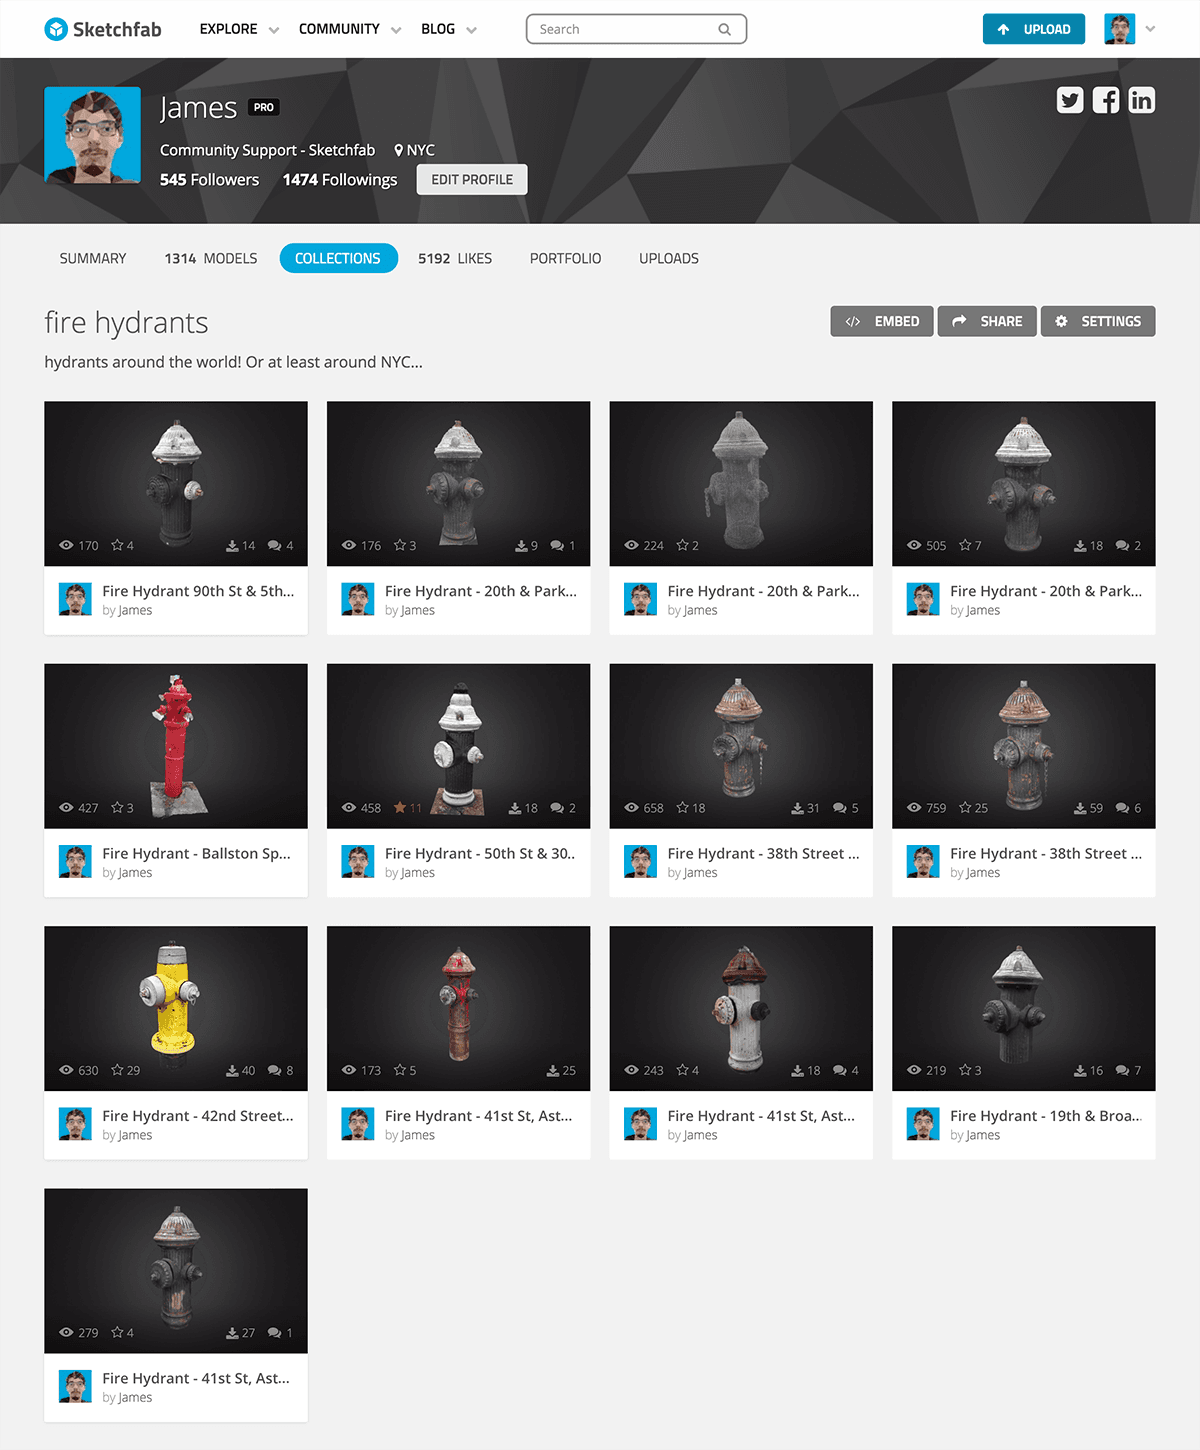 Sketchfab 3d model collection page